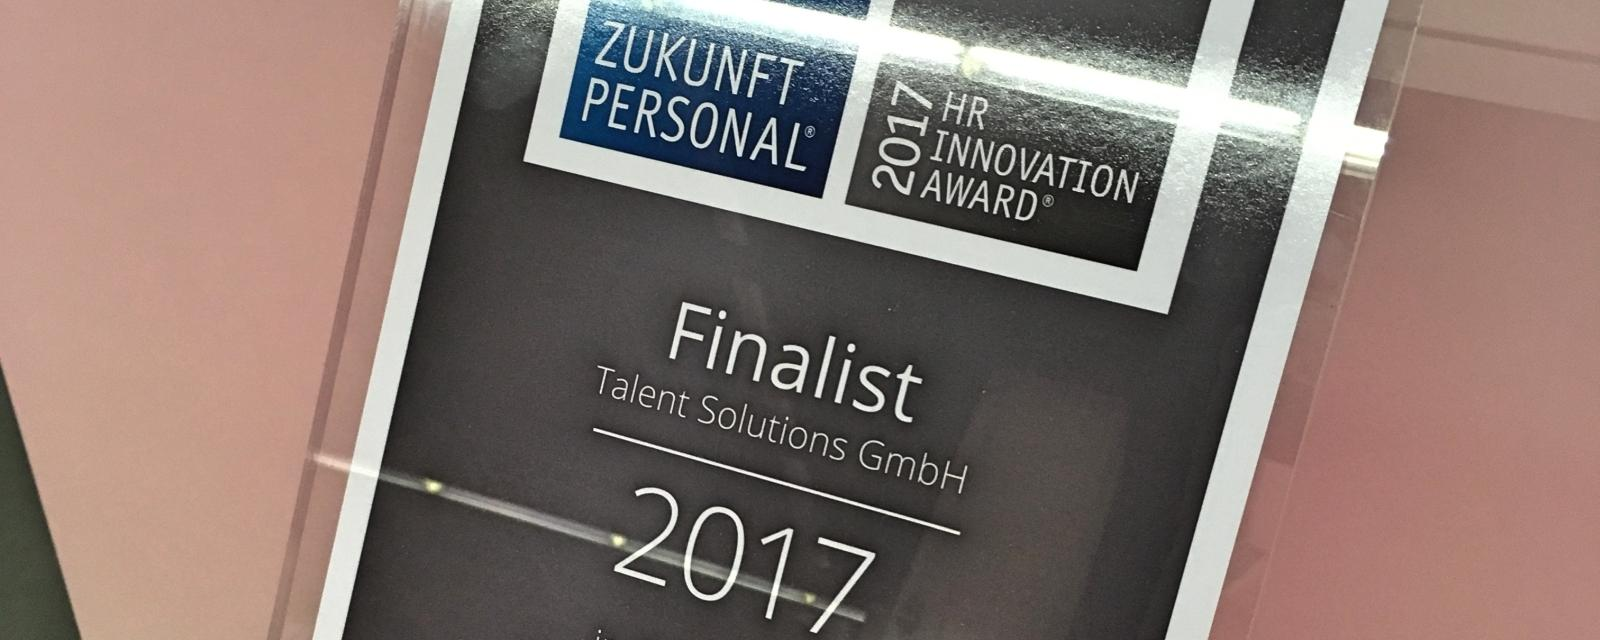 Finalist beim HR Innovation Award 2017